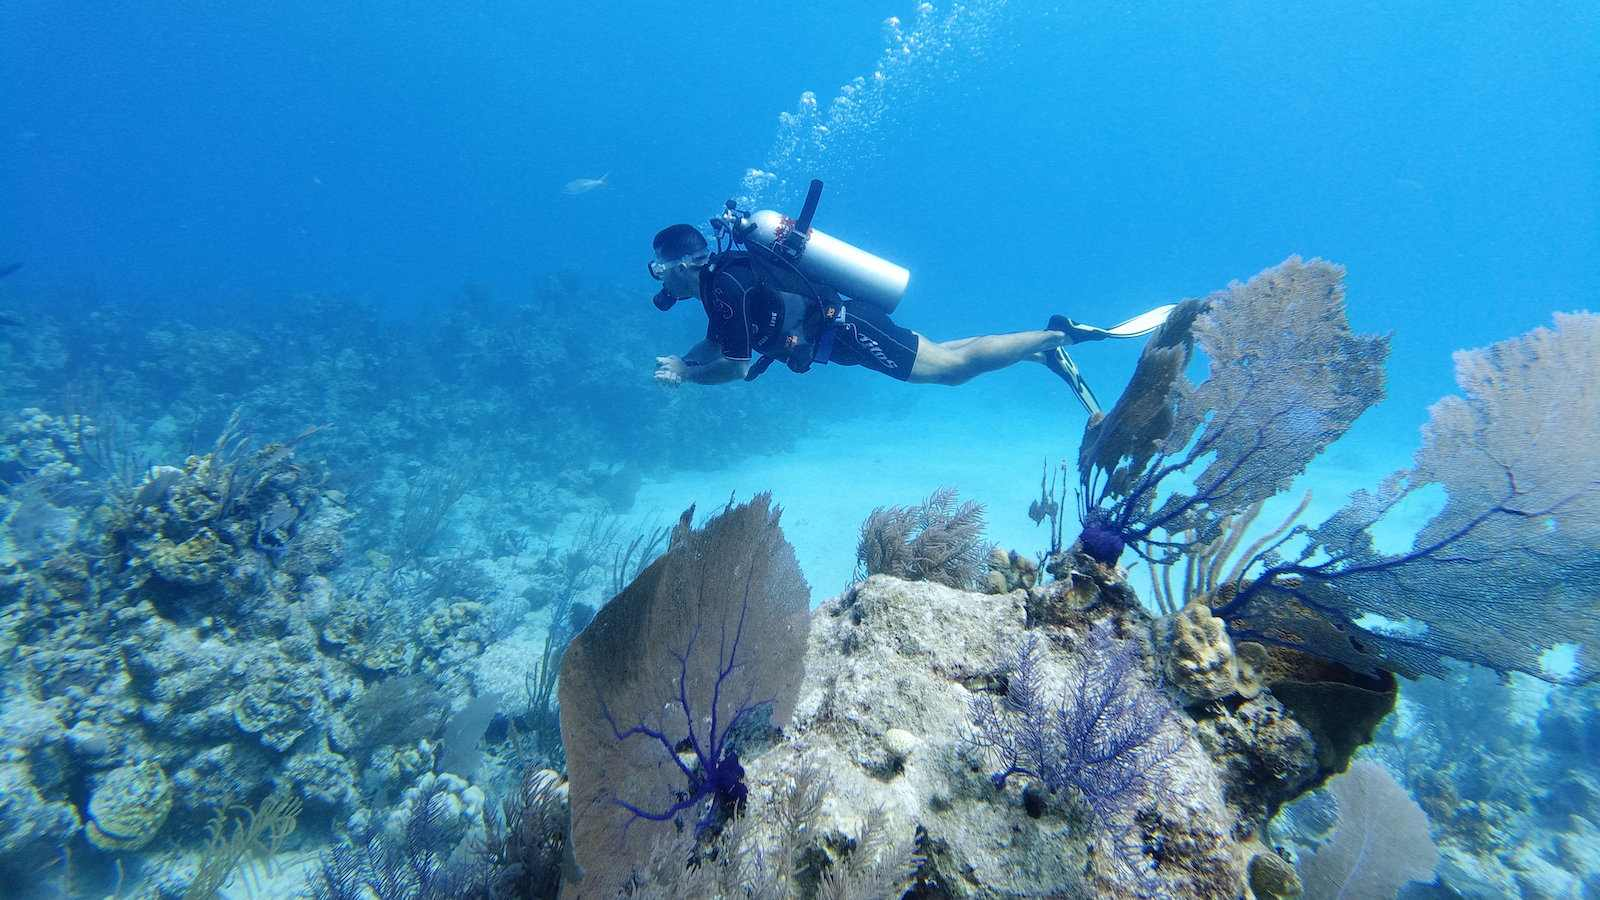 Scuba diving in Mexico's Sea of Cozumel is even better on a gay diving vacation